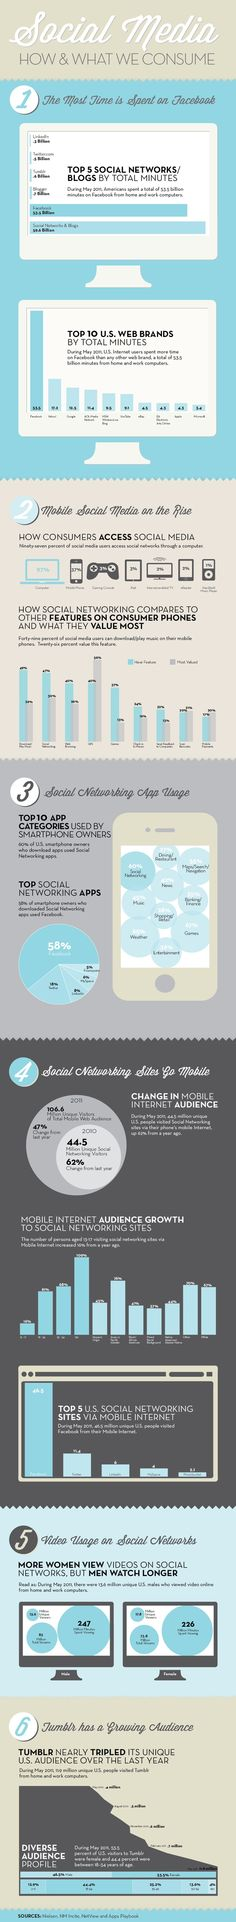 Social Media: How & What We Consume, vote on best infographic